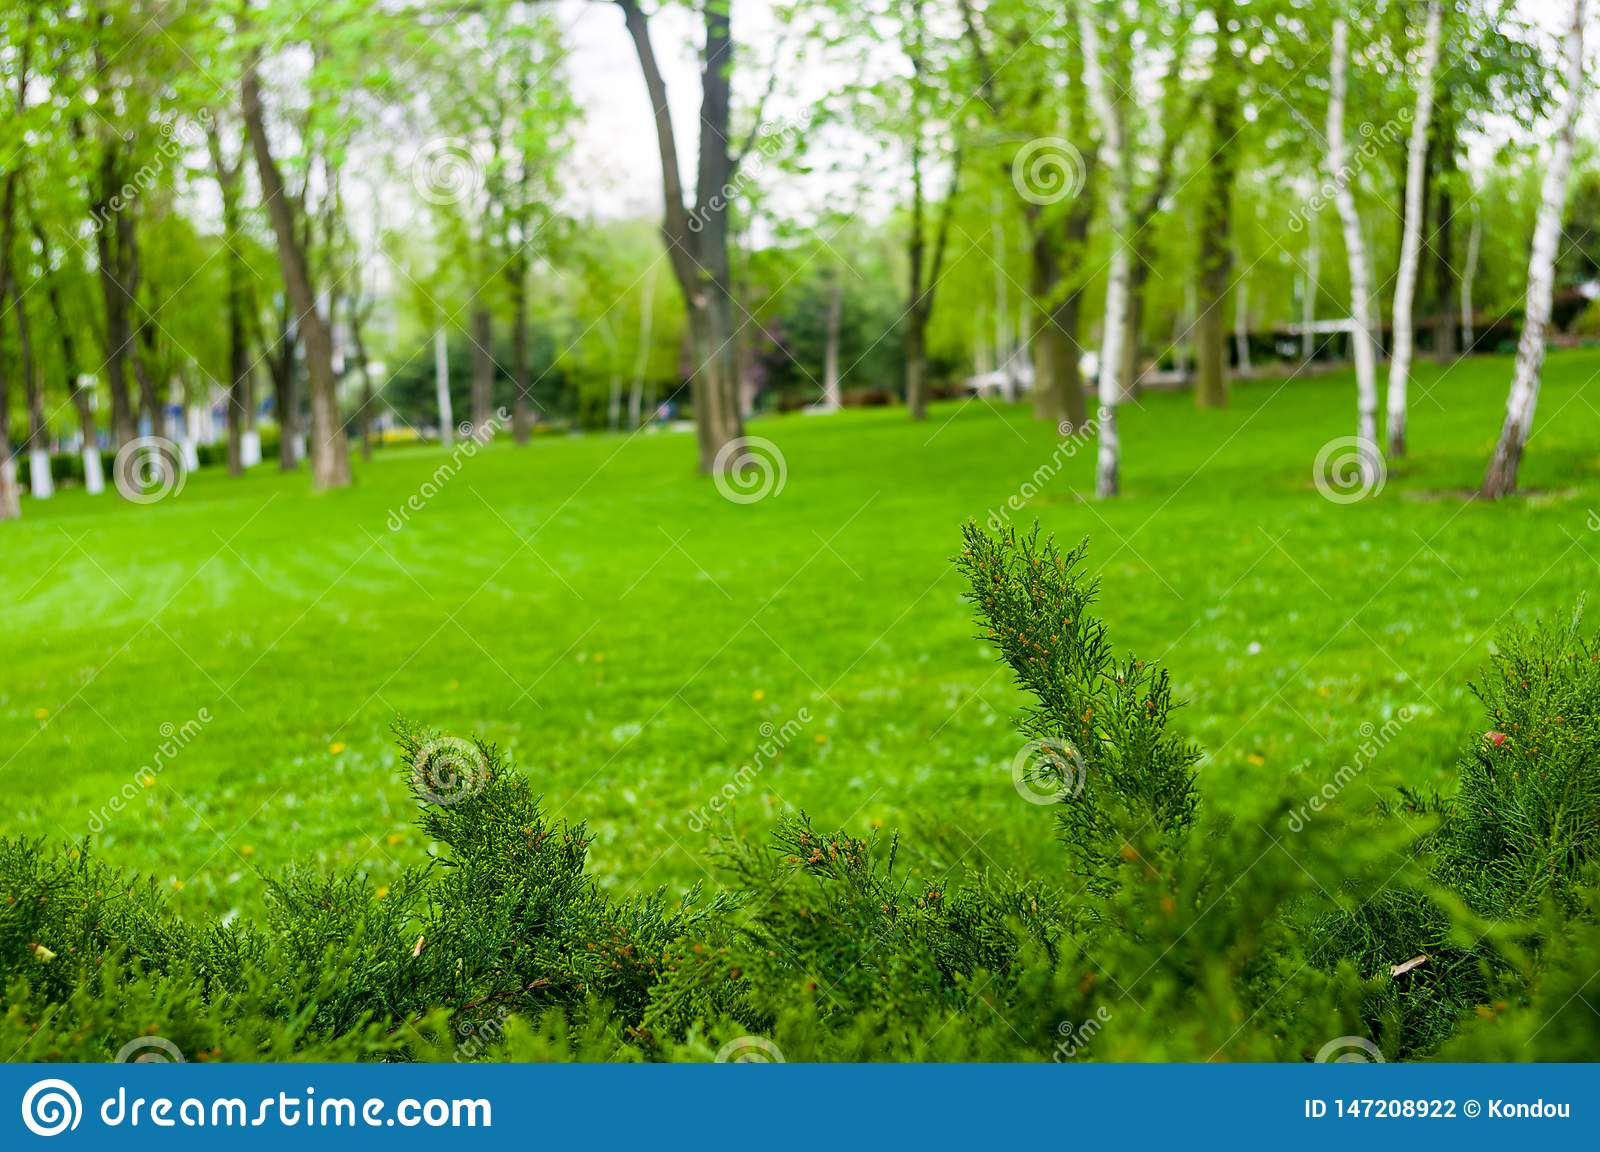 spring city Park - blooming flower and trees, bright green grass